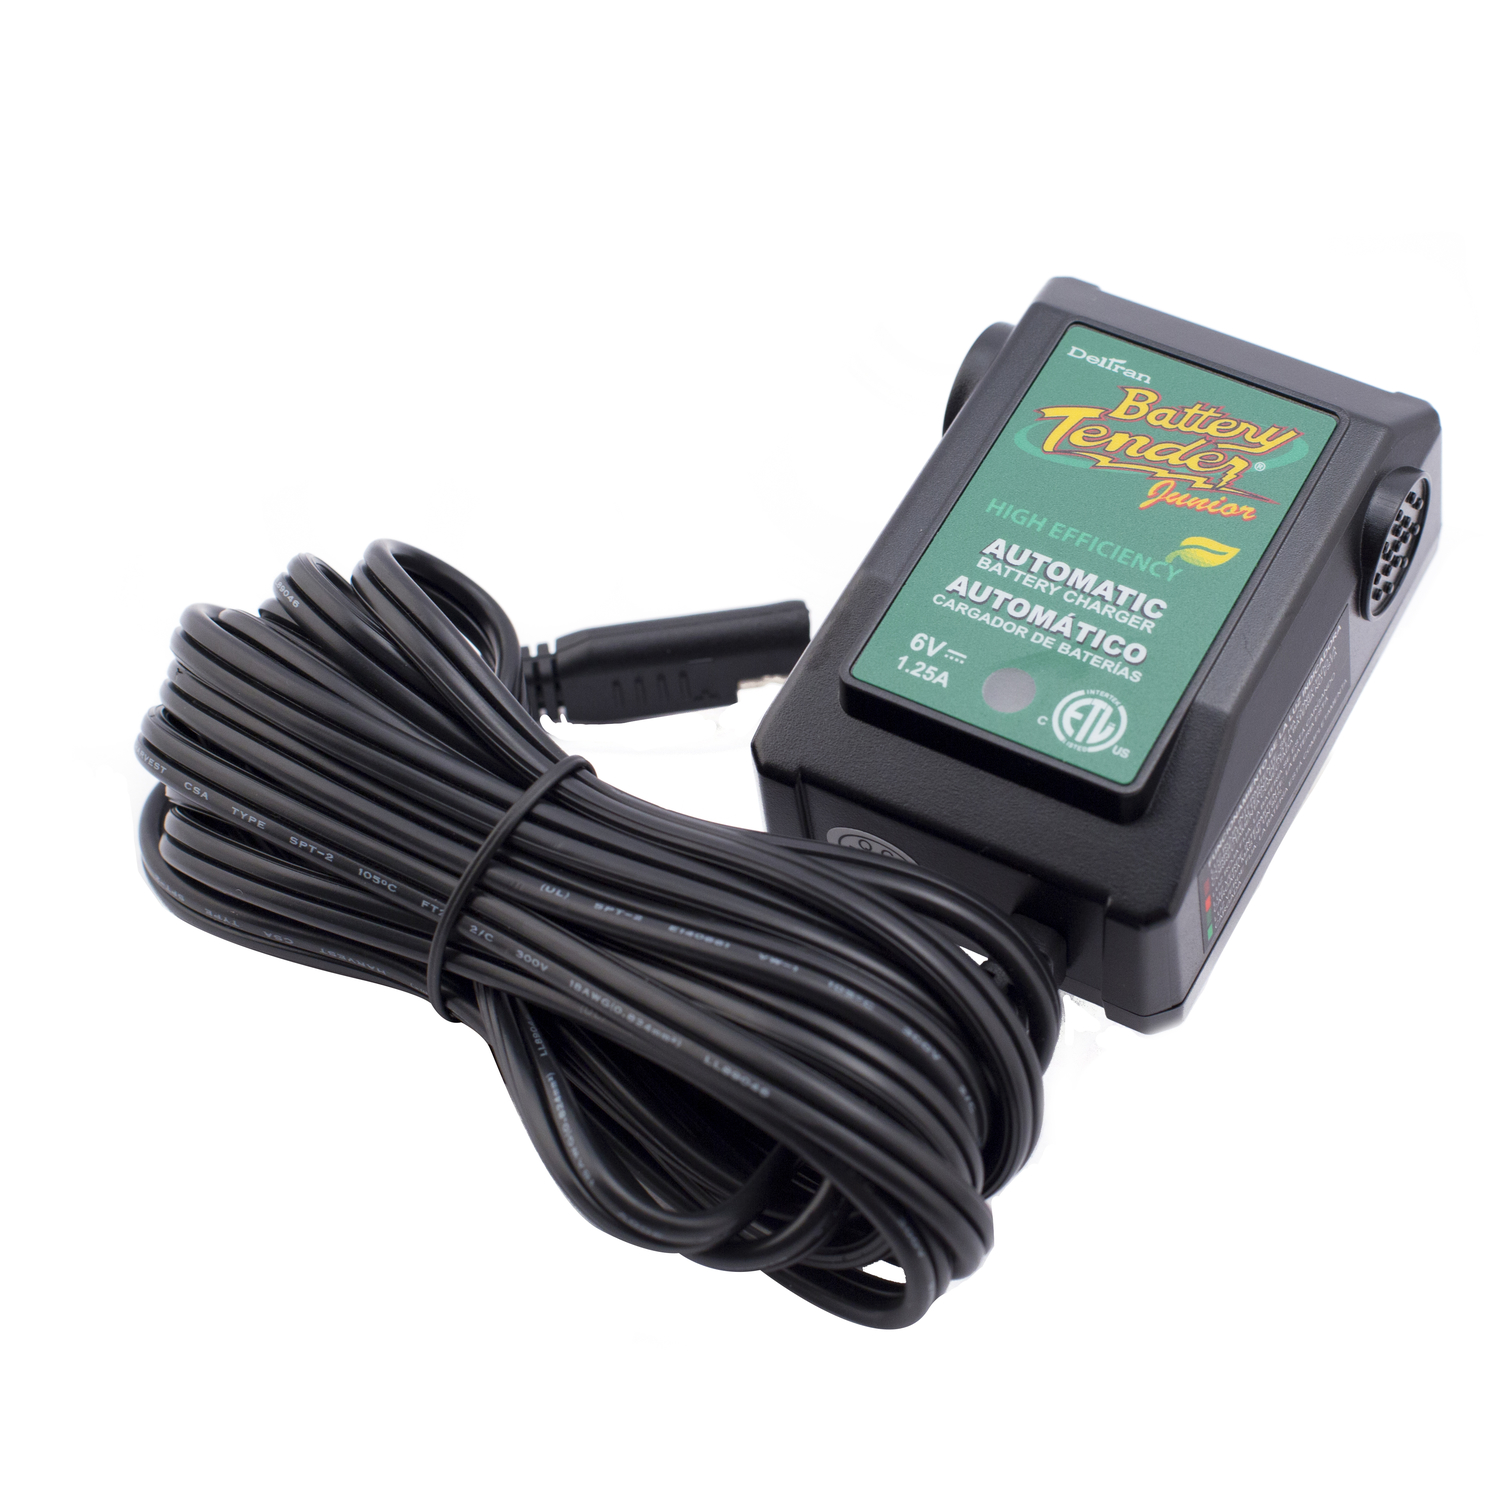 Battery Tender  Automatic  6 volts Battery Charger  1.25 amps